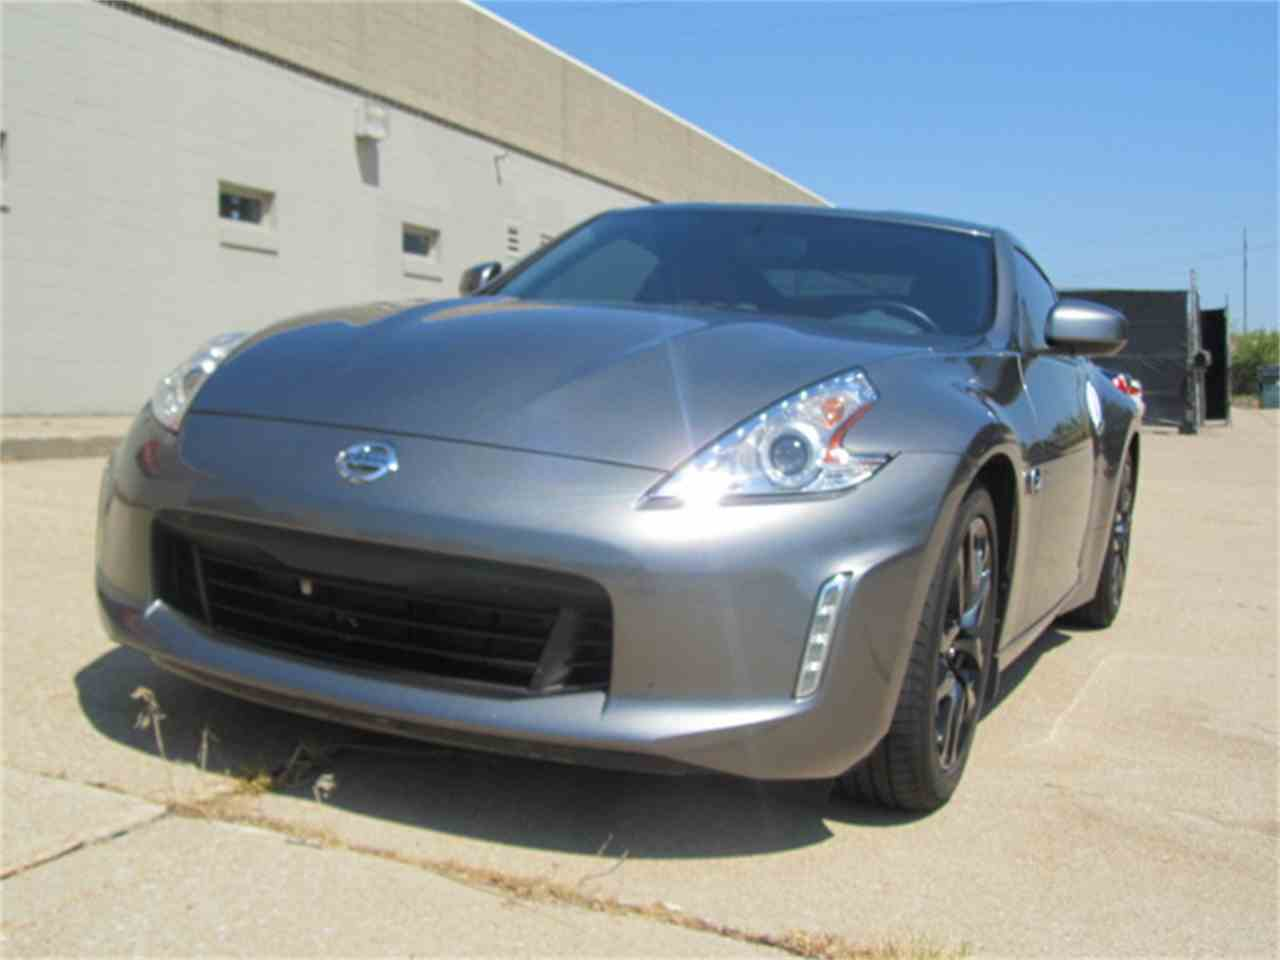 Large Picture of 2016 Nissan 370Z located in Omaha Nebraska - $24,900.00 Offered by Classic Auto Sales - LI7Y